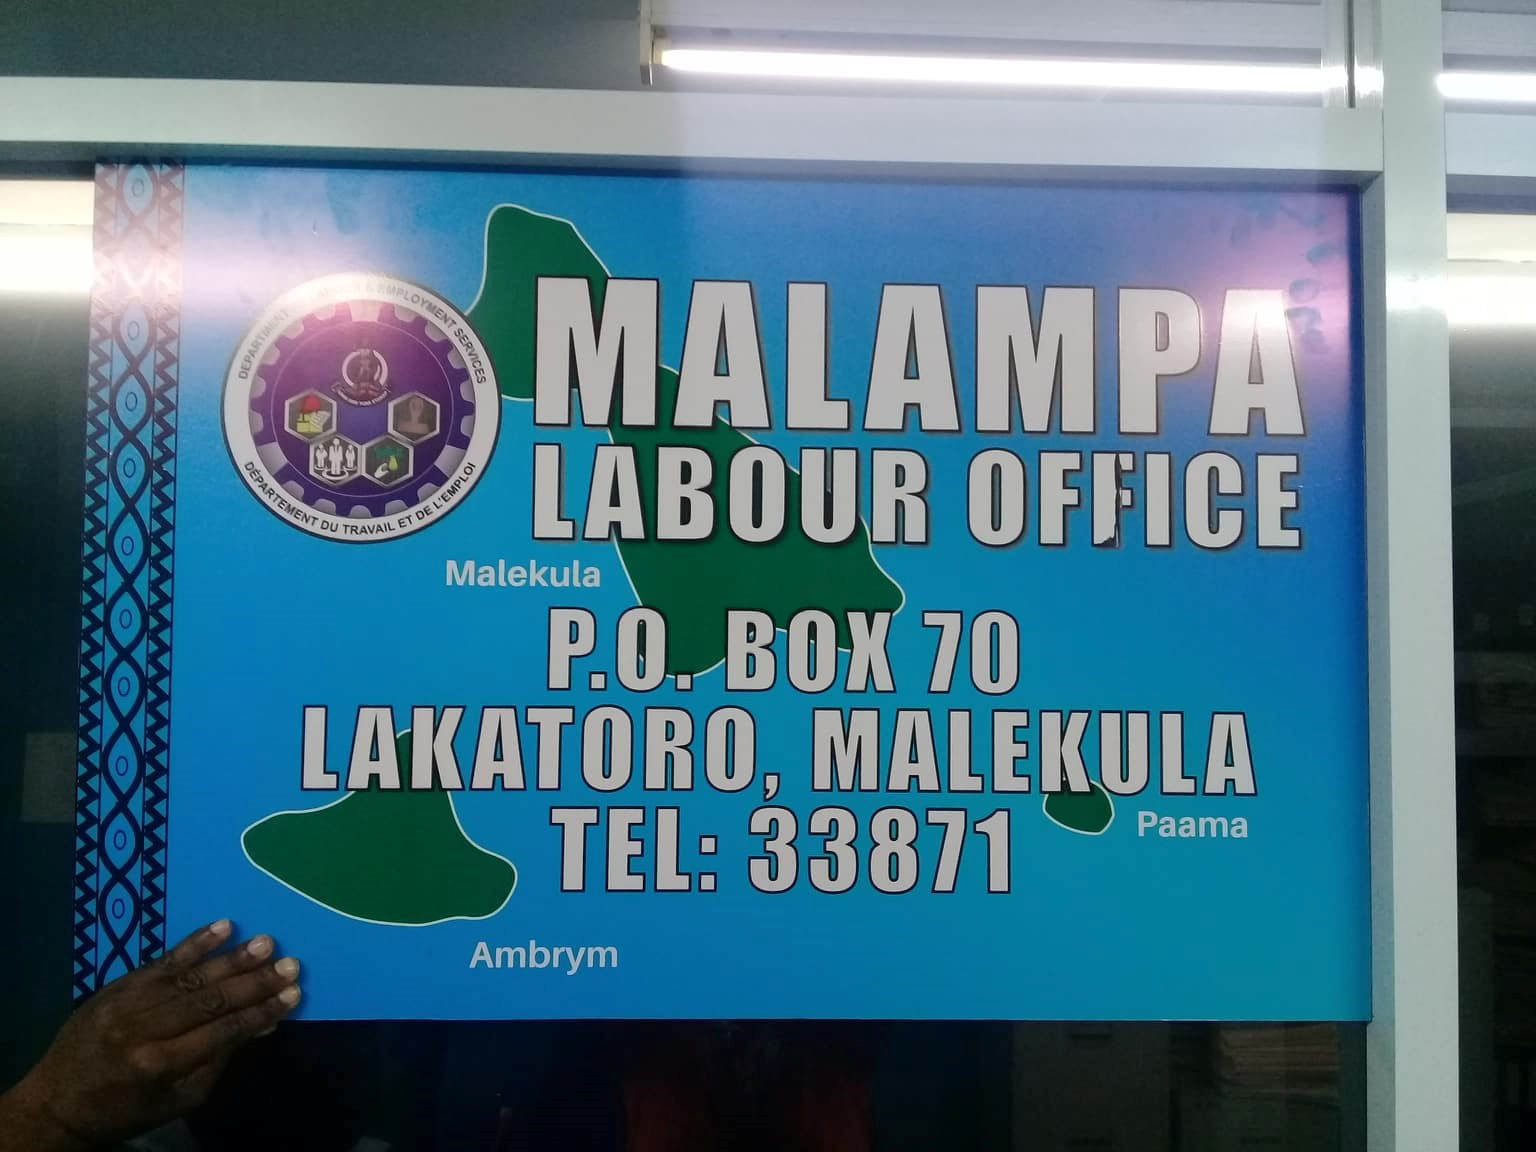 New Labour Office At Malampa Province